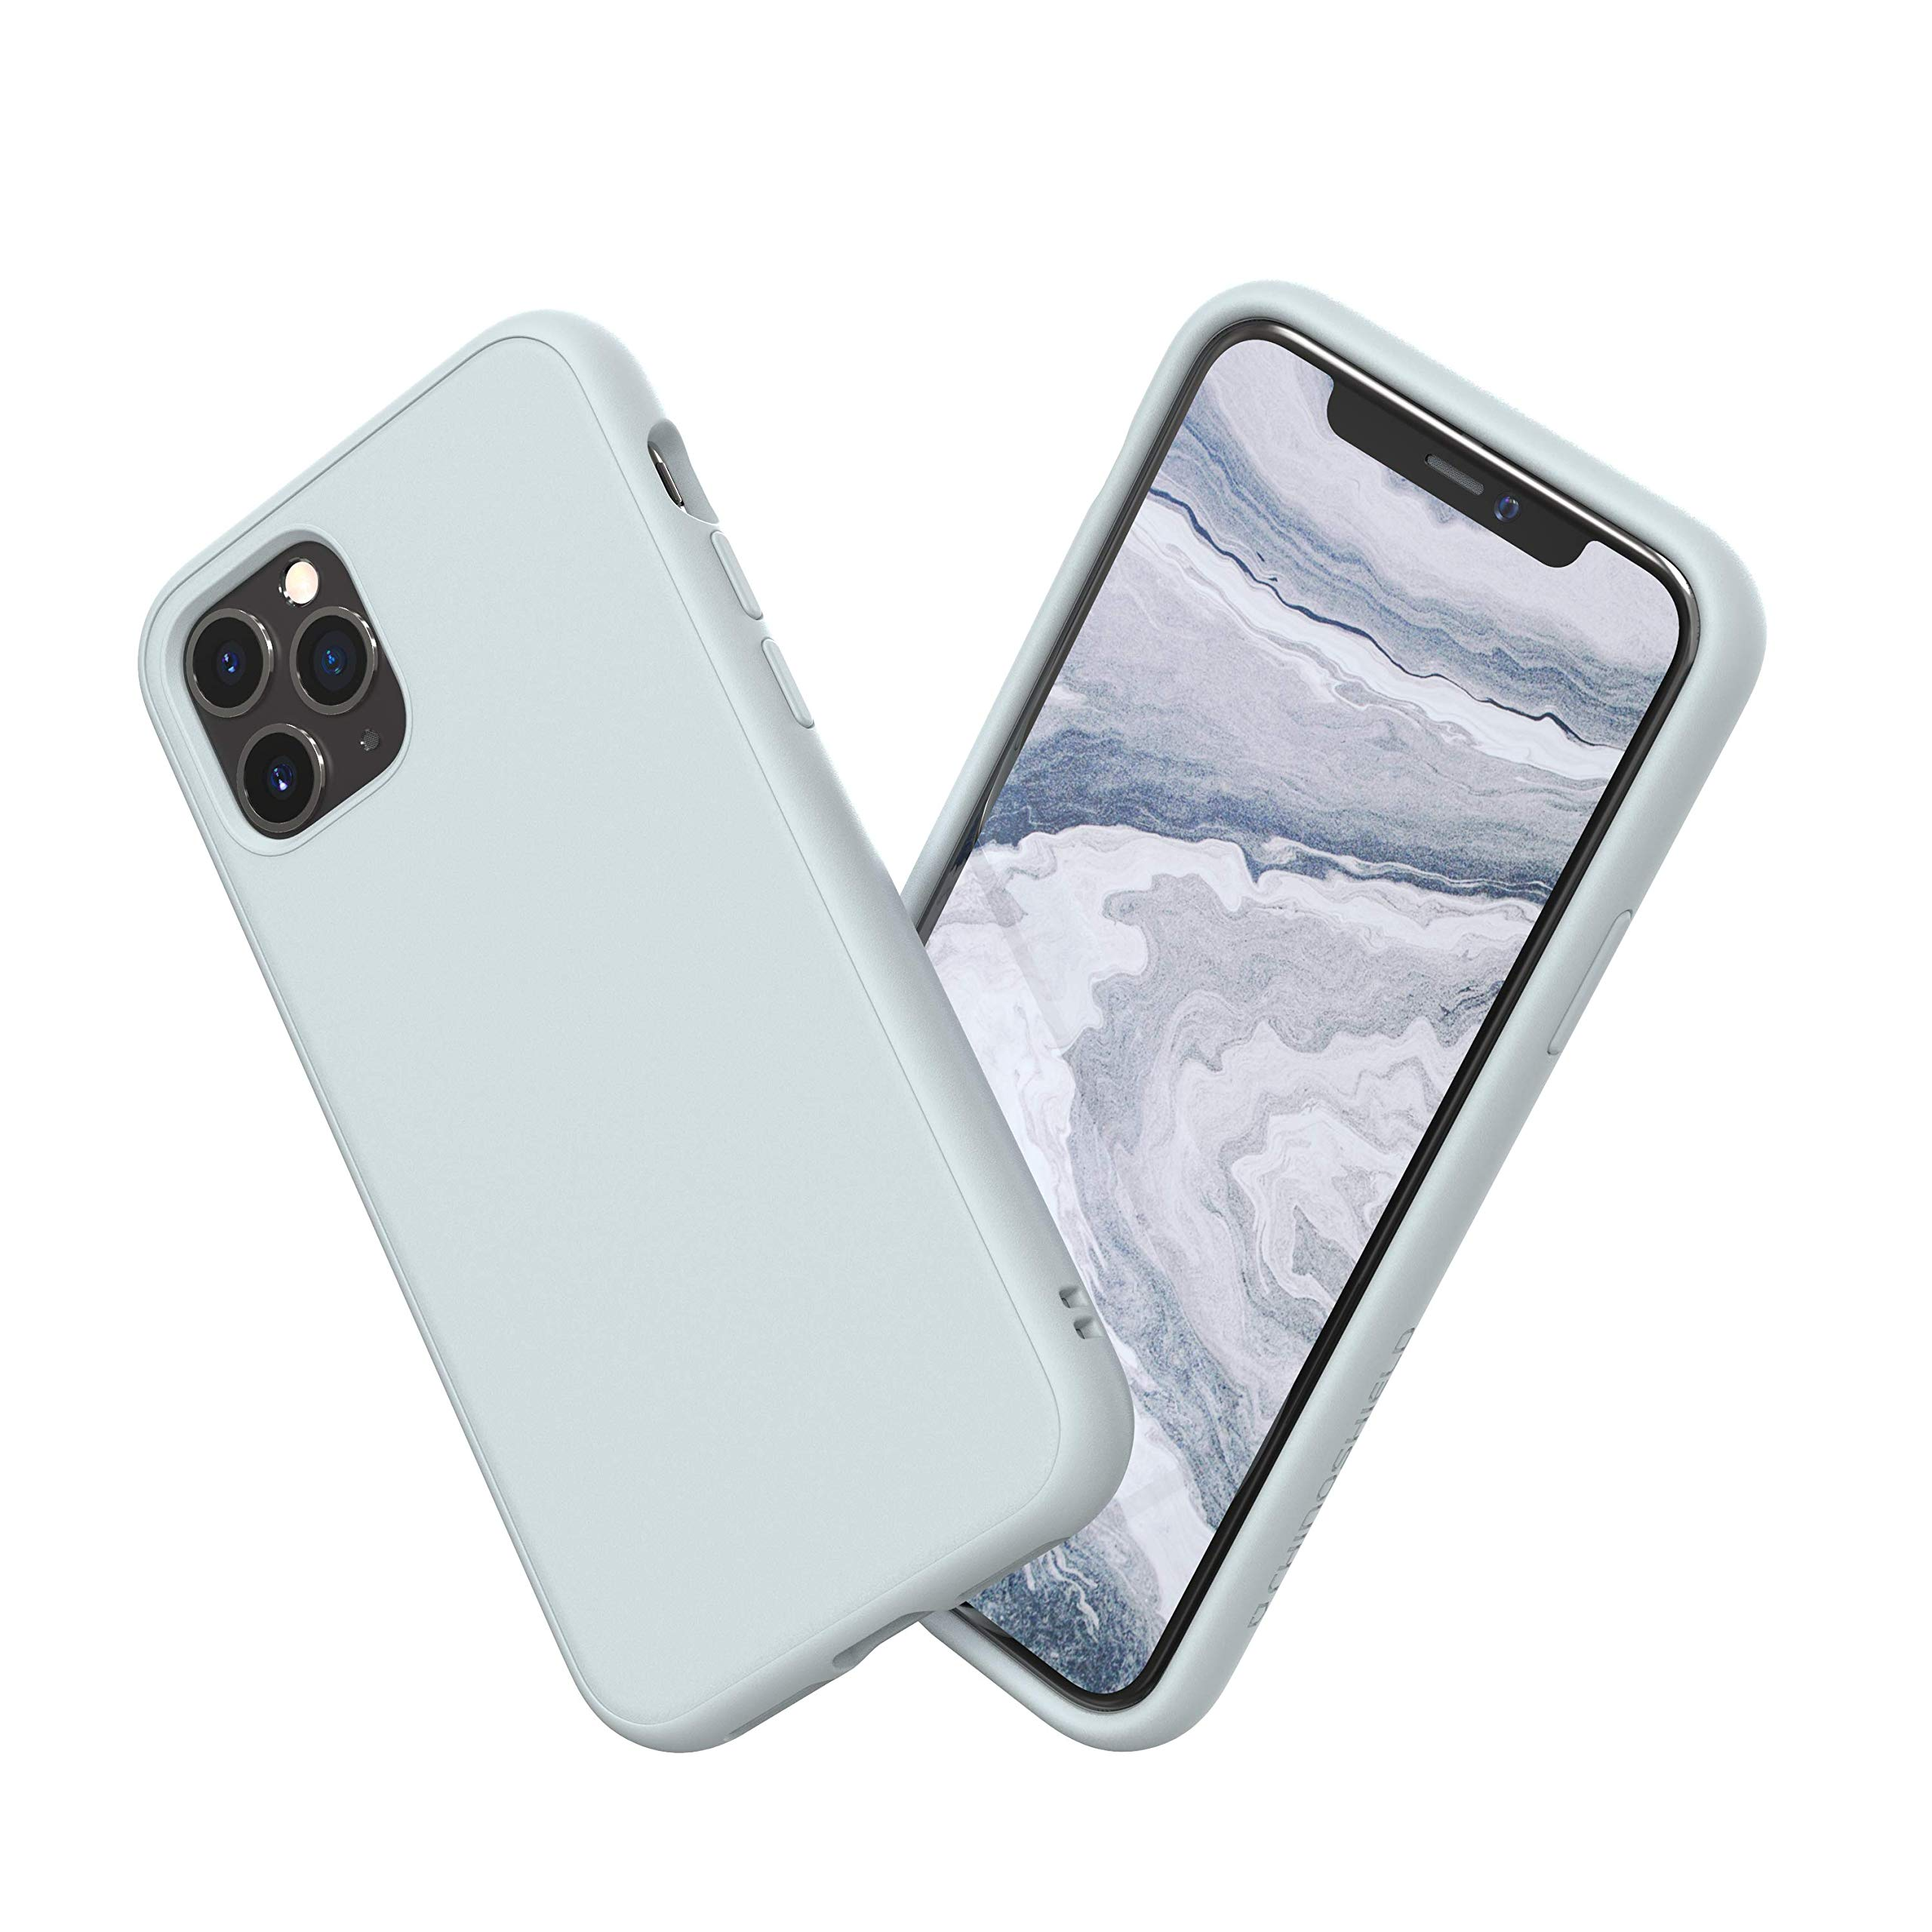 Rhinoshield Case For Iphone 11 Pro Solidsuit Shock Absorbent Slim Design Protective Cover With Premium Matte Finish 3 5m 11ft Drop Protection Classic Cloud Gray